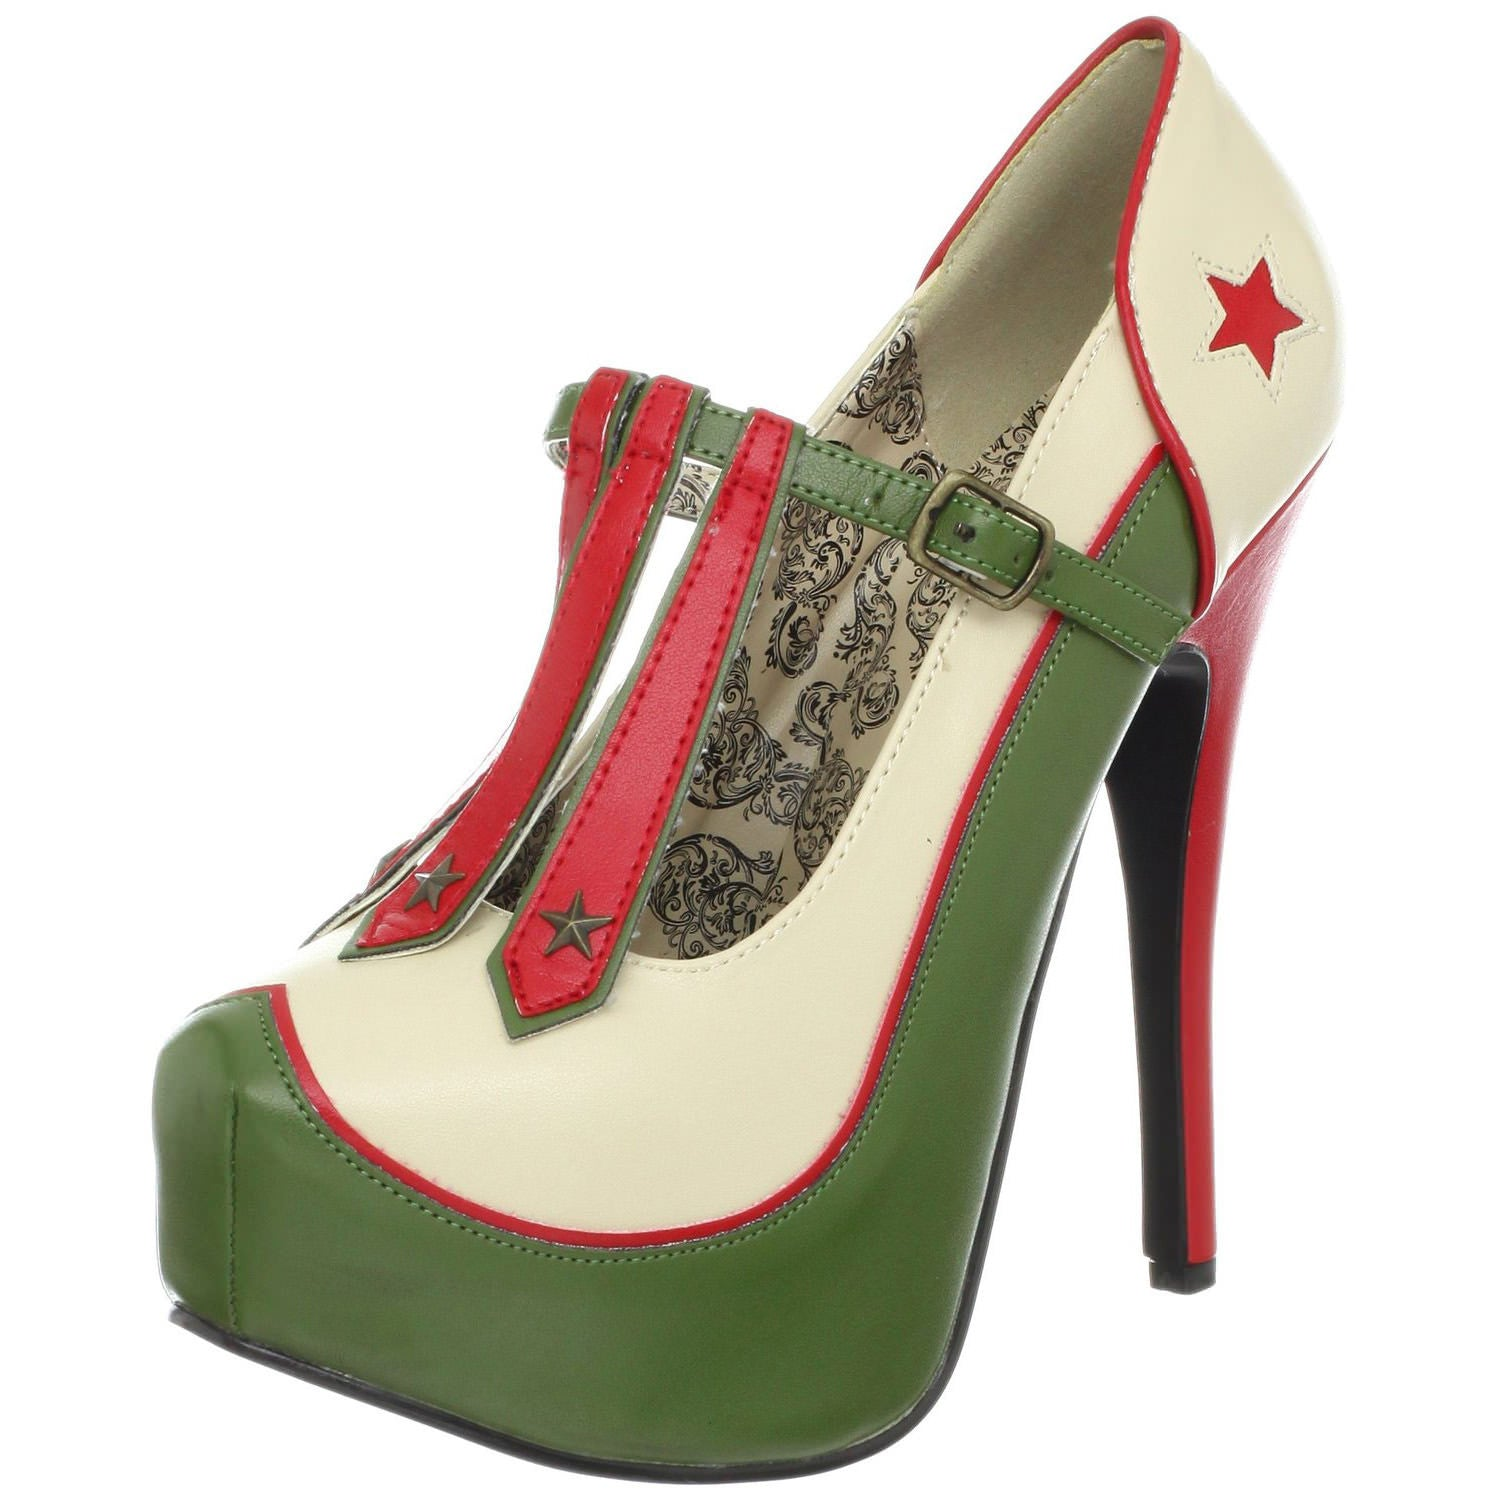 Bordello,Bordello TEEZE-43 Cream-Olive Green Pu Pumps - Shoecup.com